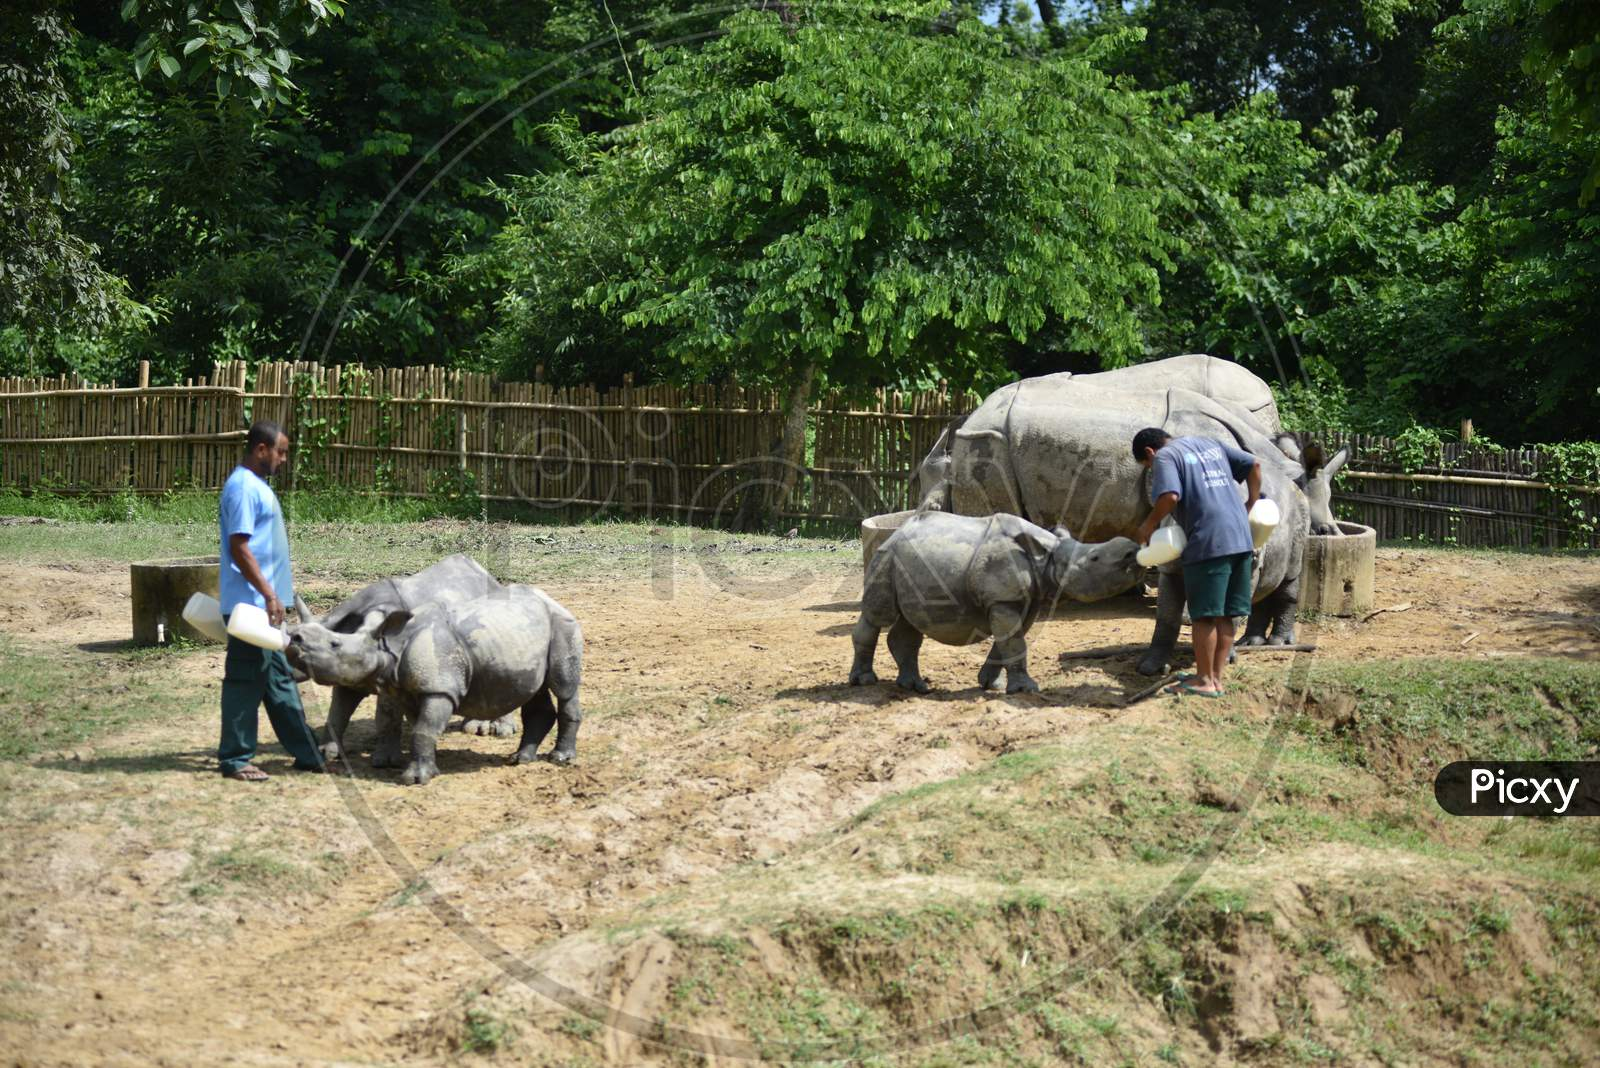 Caretakers Feeding White Rhinoceros Baby in Kaziranga National Park